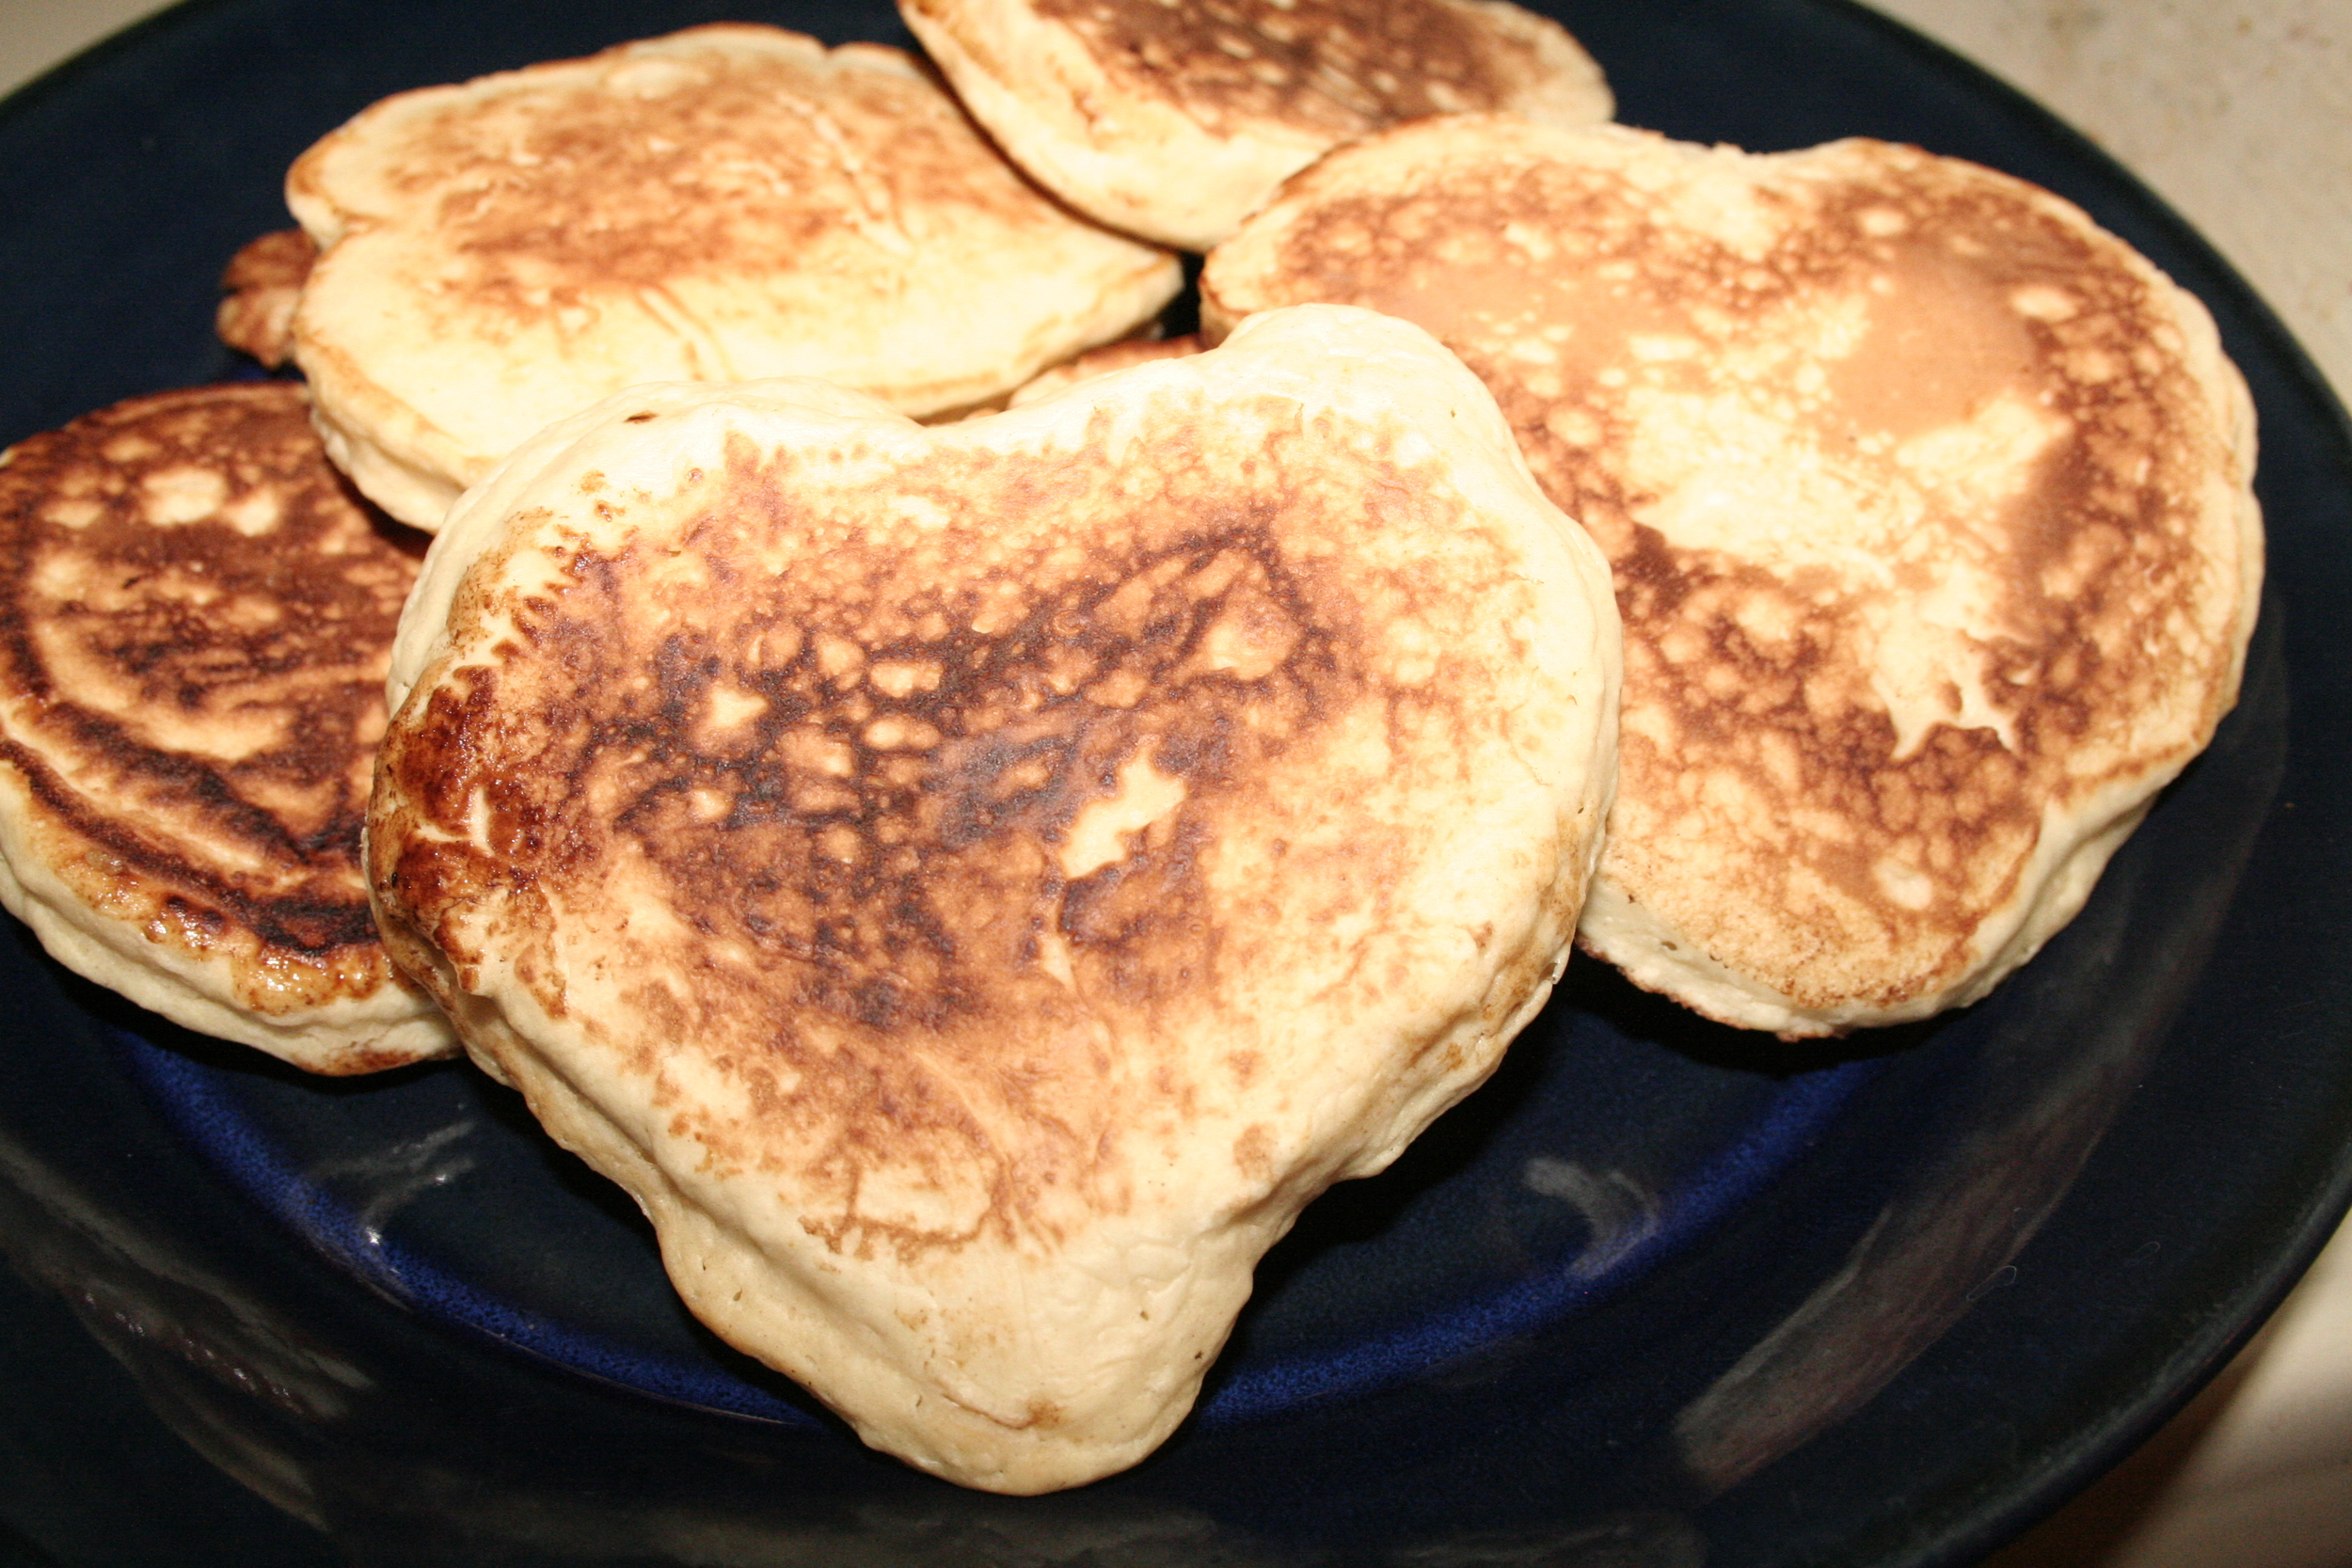 25: For Valentine's Day, I made Mr. LL some pancakes. I tried to make them heartshape, but gave up.